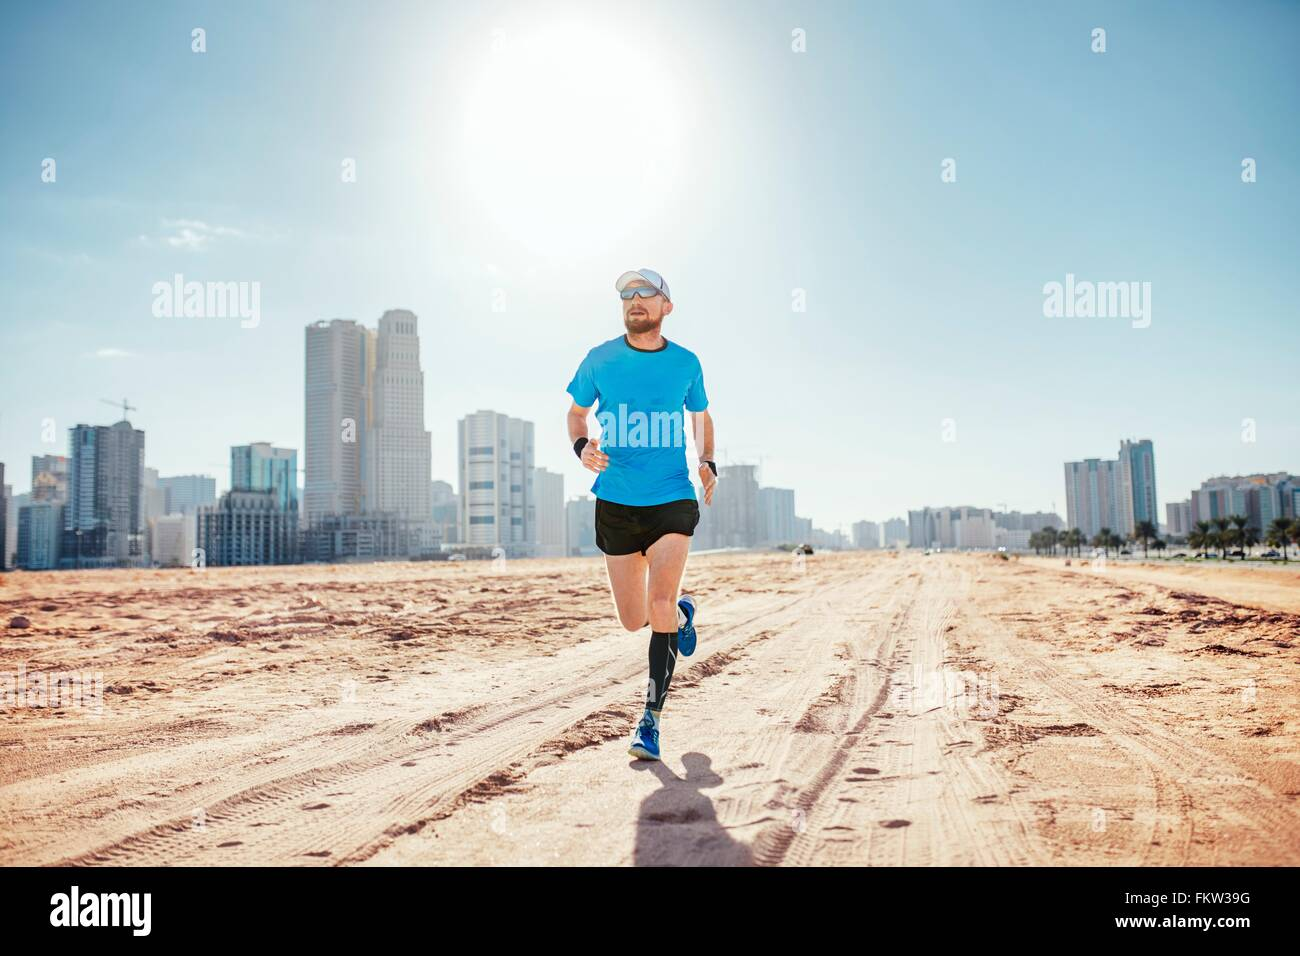 Full length front view of mid adult man running on sand by sky scrapers, Dubai, United Arab Emirates - Stock Image